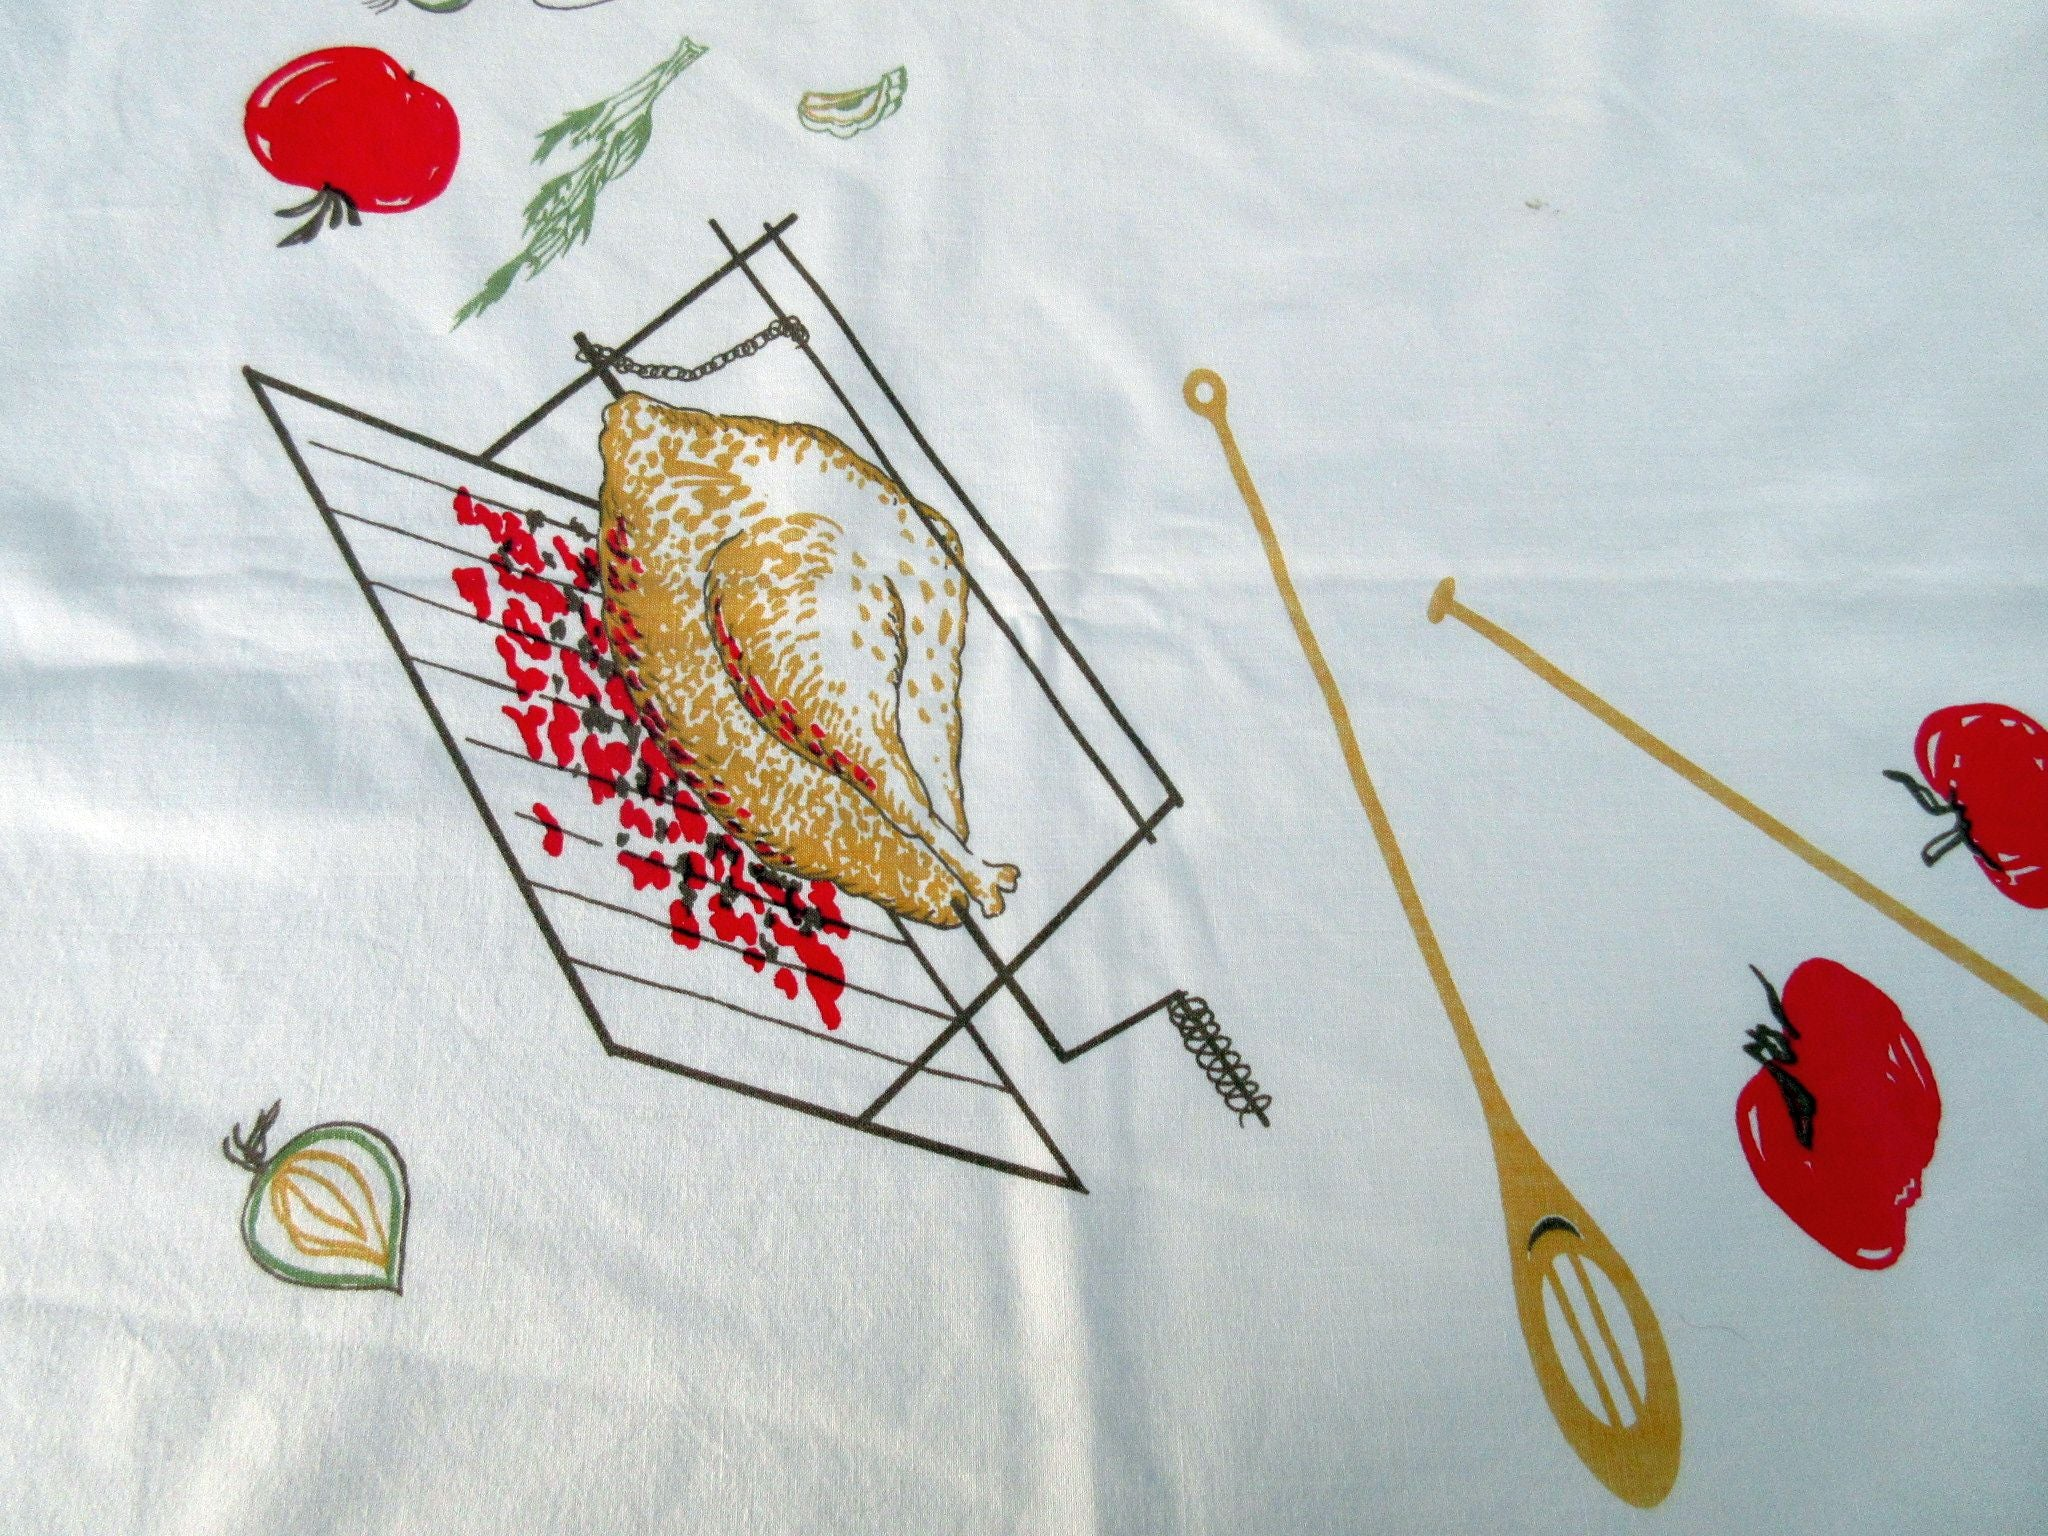 HTF Barbecue BBQ Lobster Kebabs Novelty Vintage Printed Tablecloth (64 X 52)